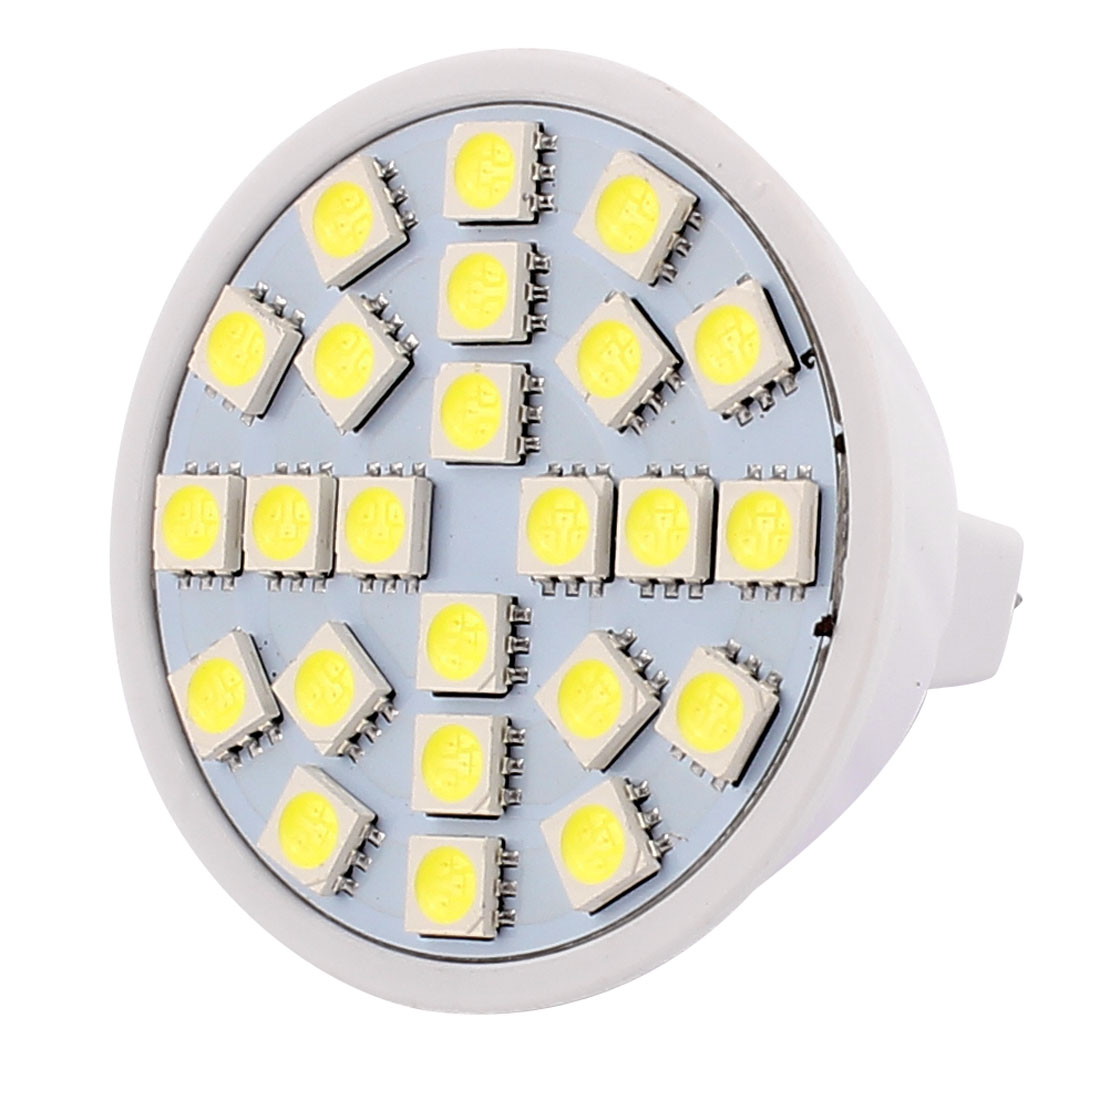 220V 5W MR16 5050 SMD 24 LEDs LED Bulb Light Spotlight Lamp Lighting White